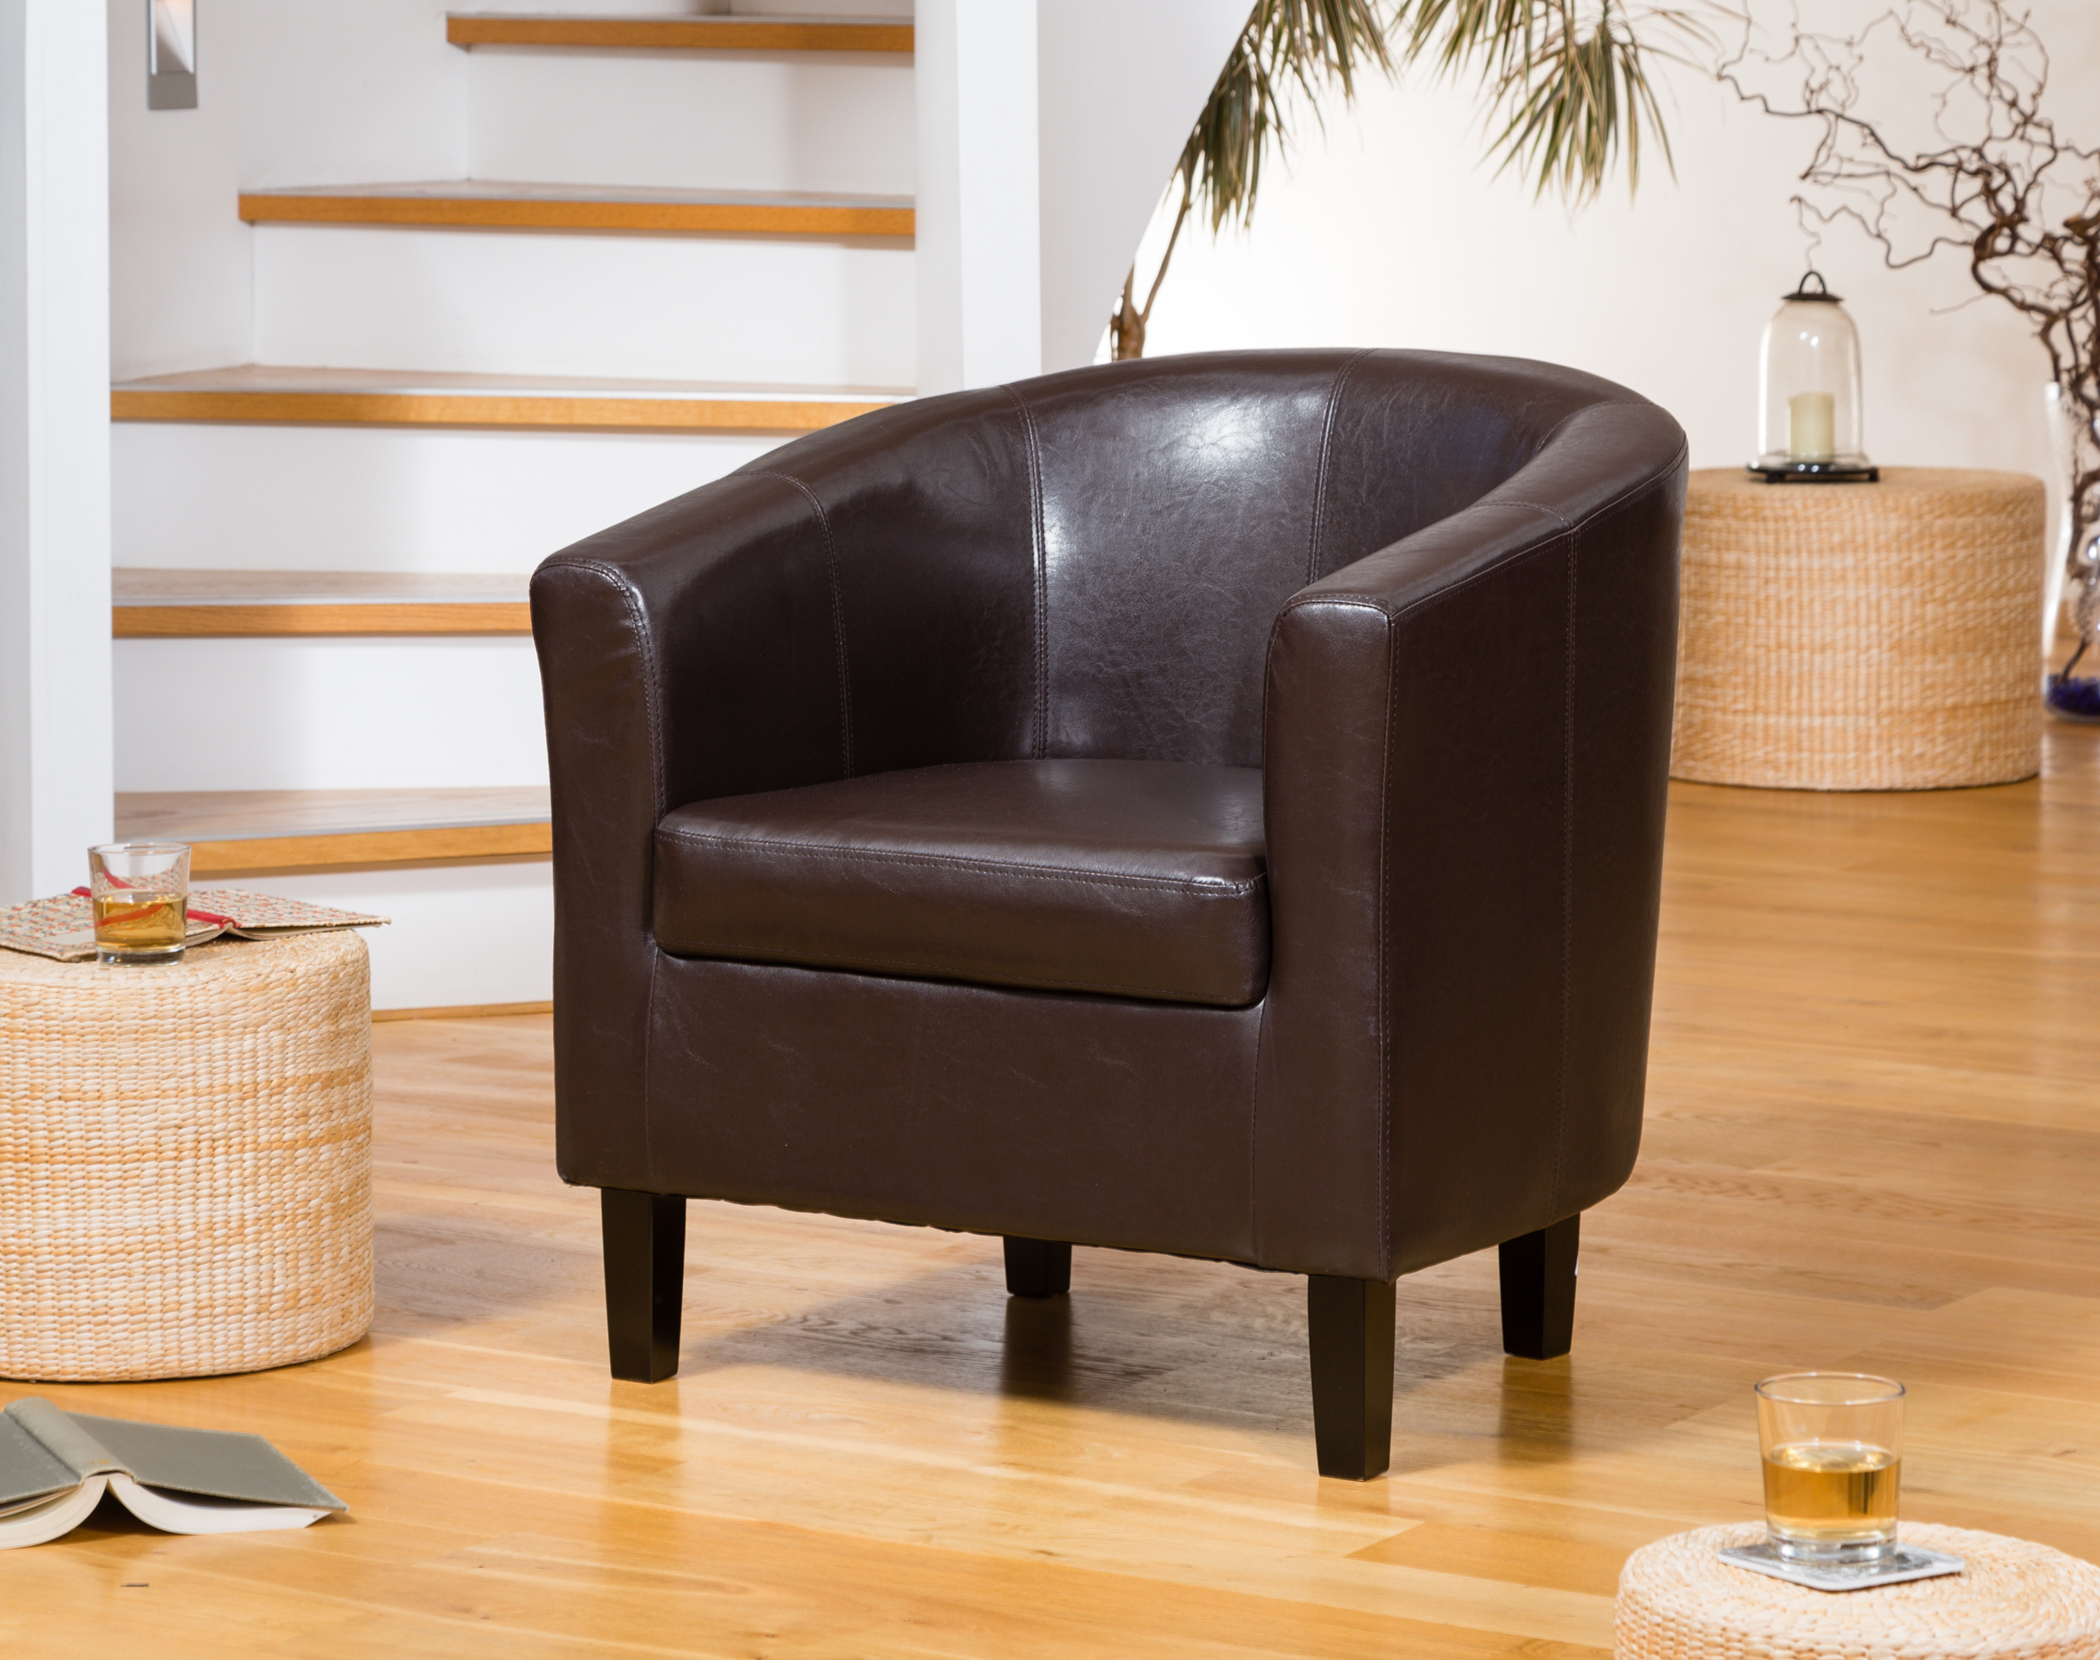 Boscombe Tub Chair brown